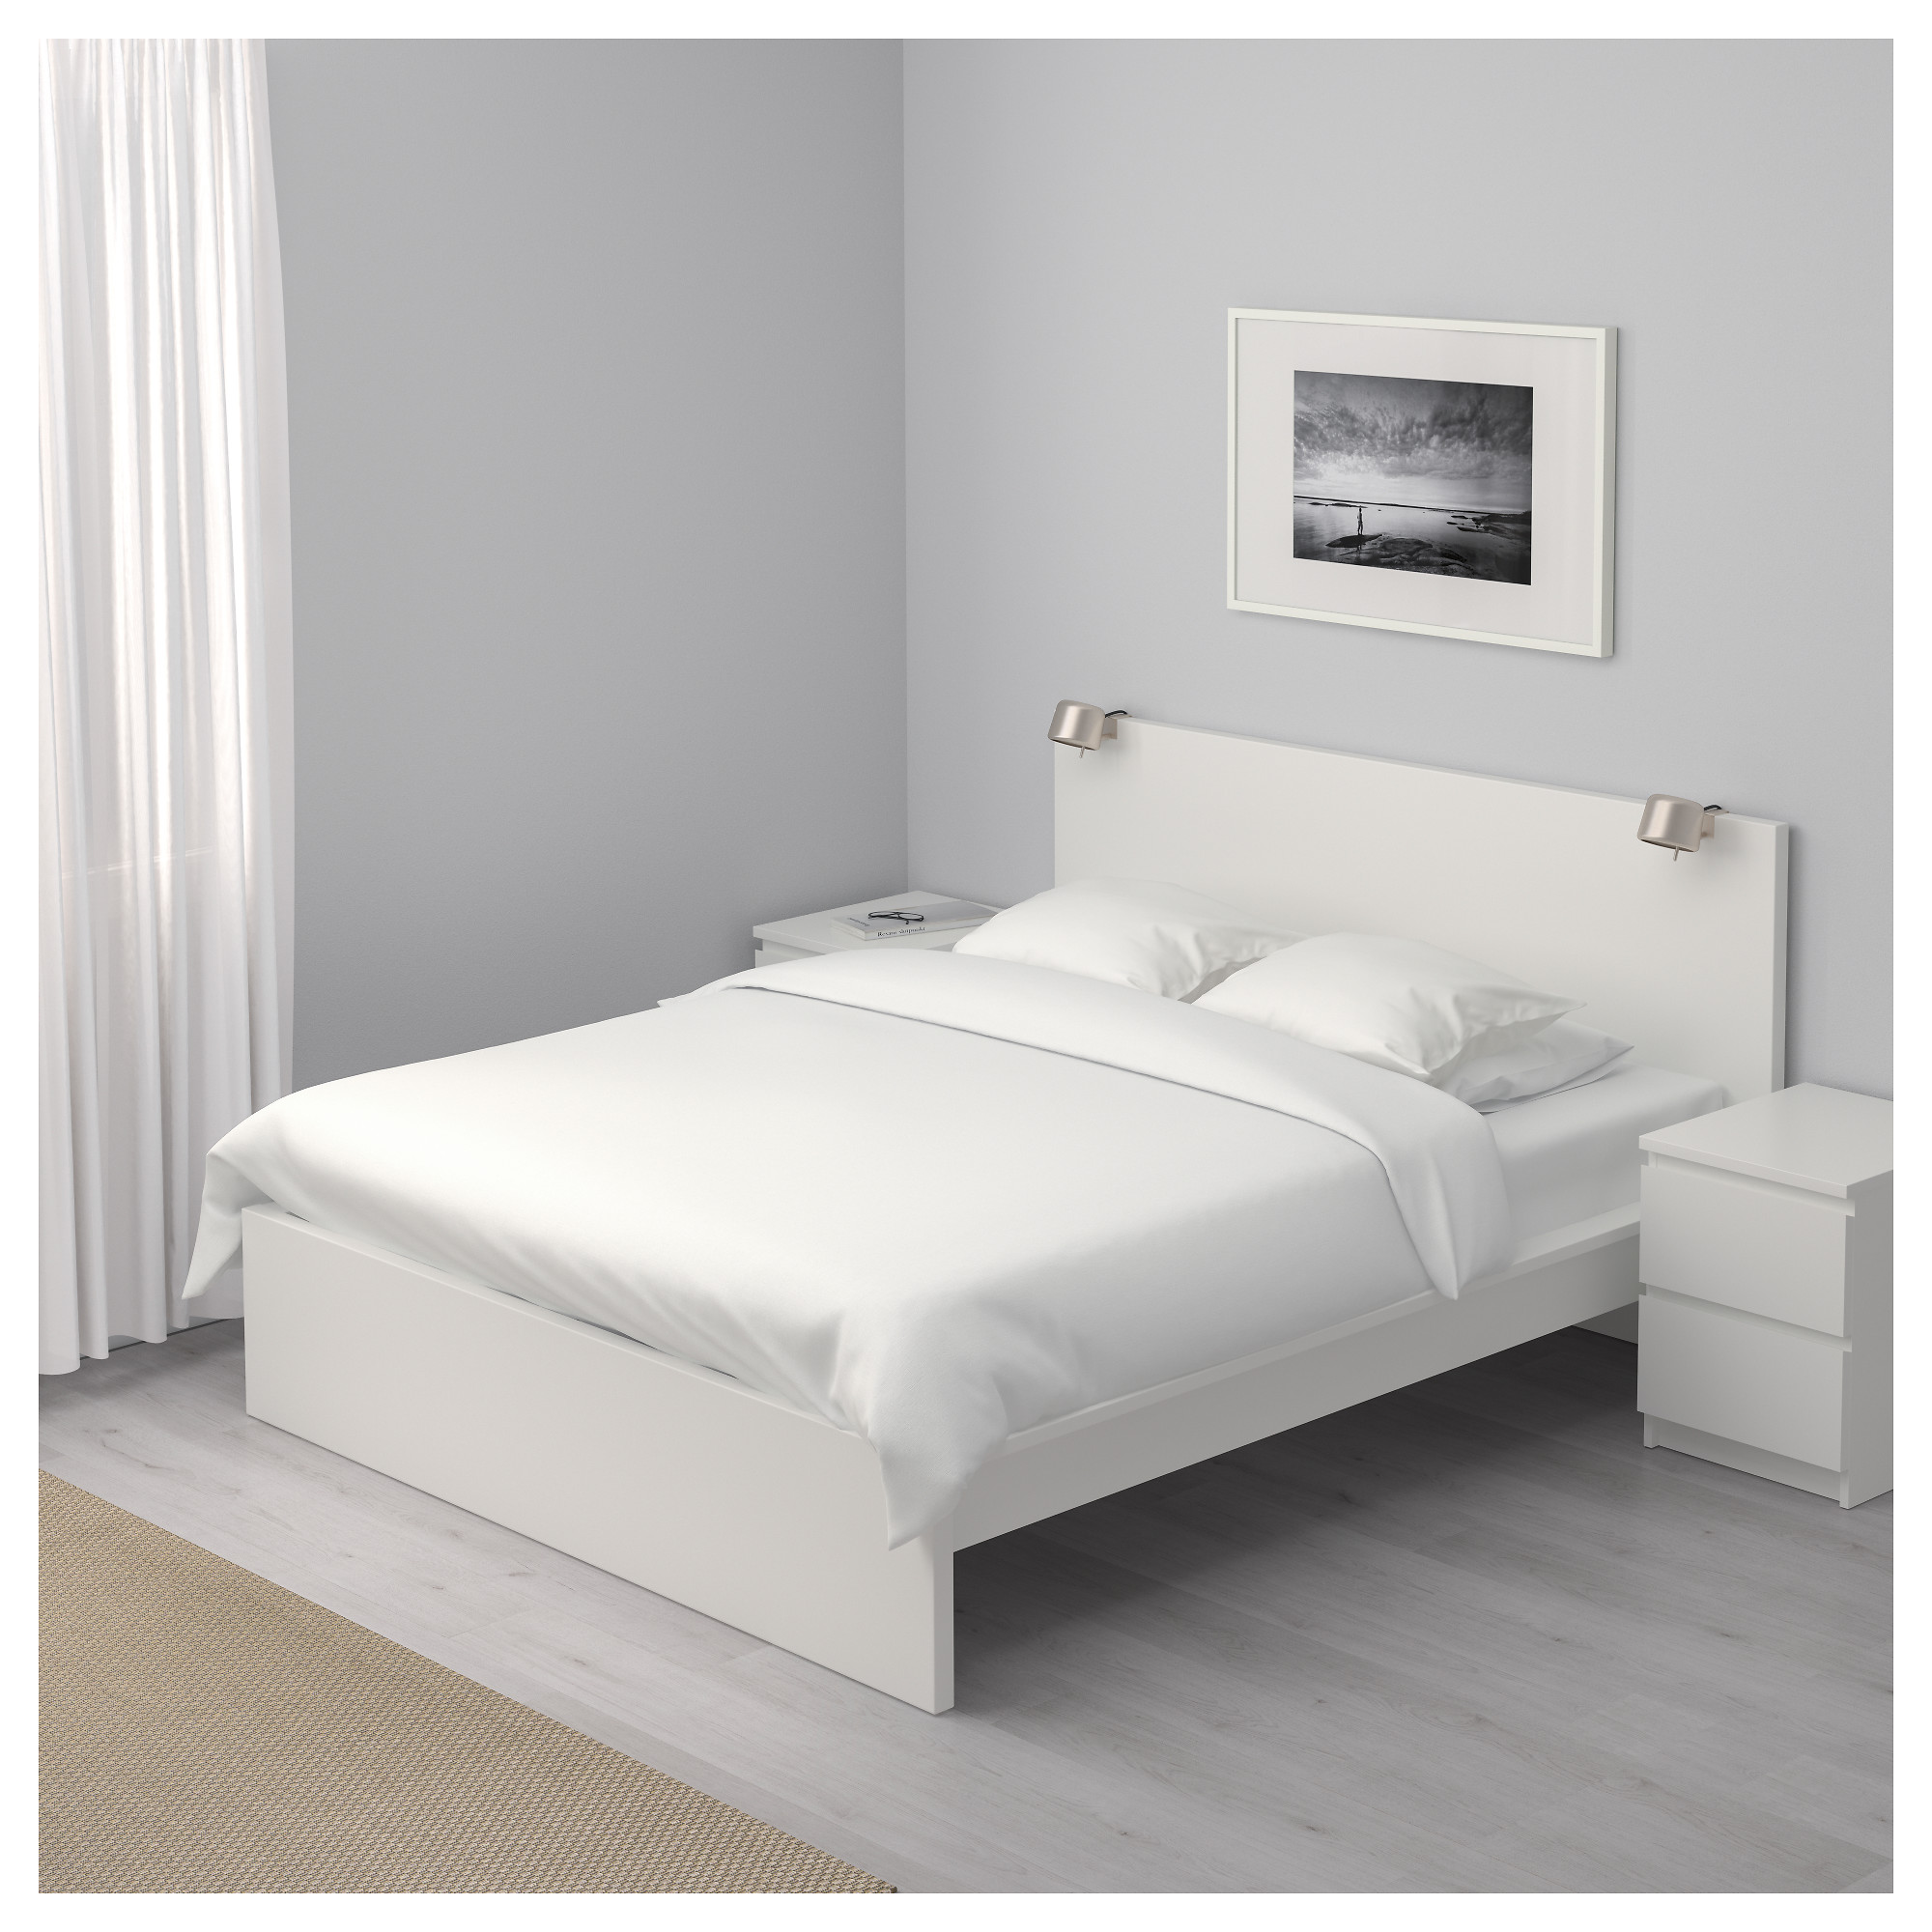 beds storage white ottoman bed henley closed leather